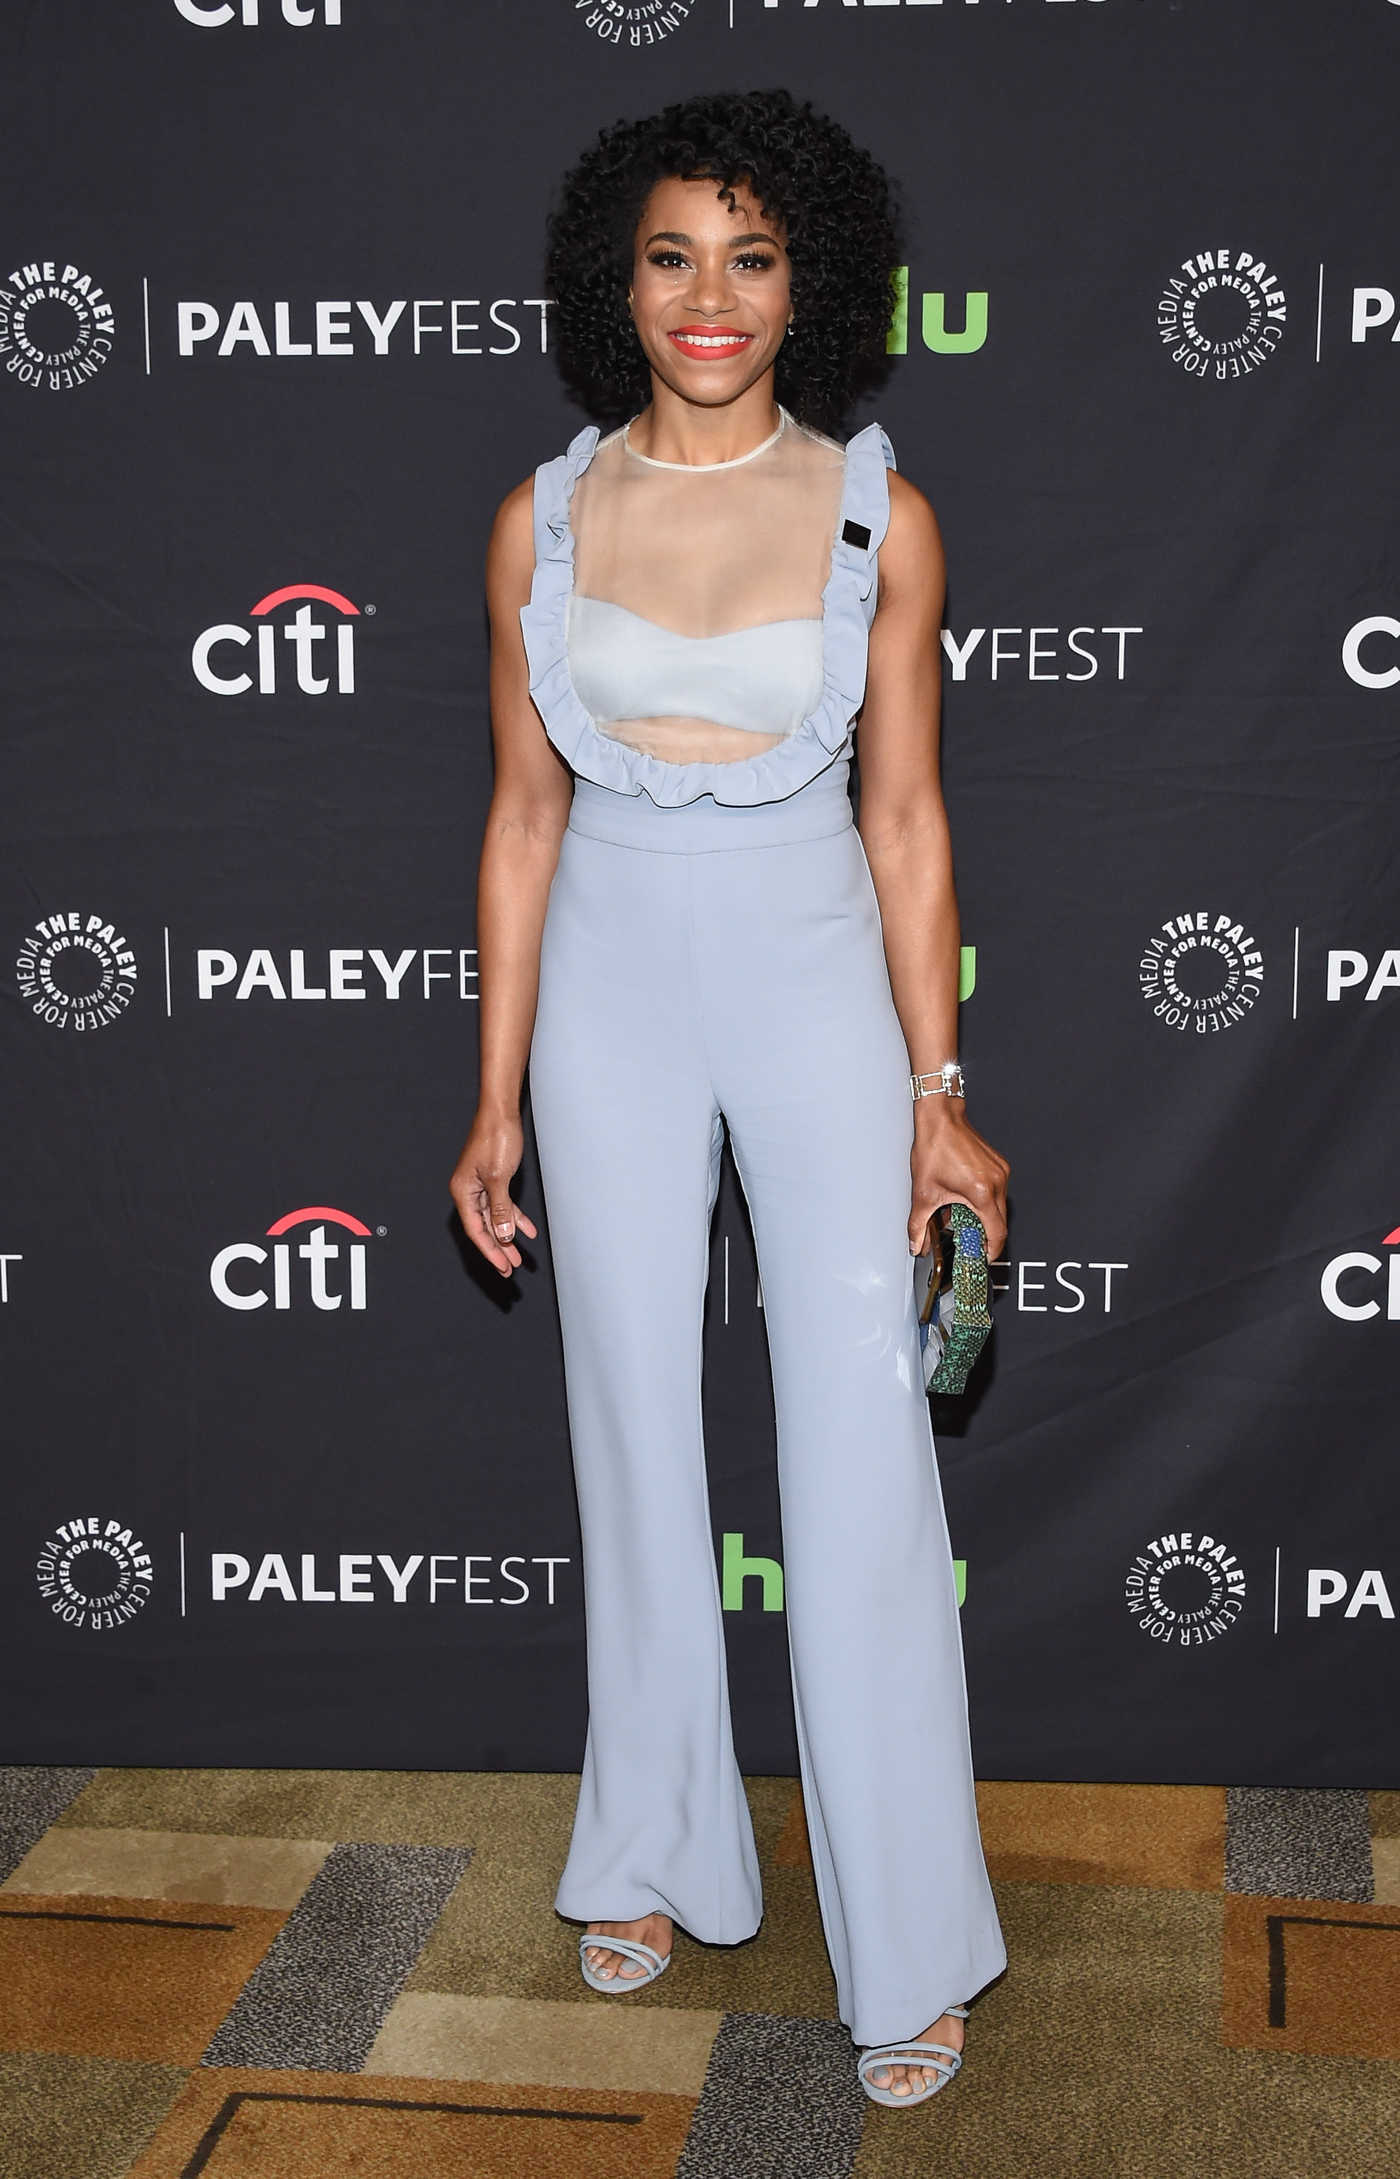 Kelly McCreary at the 34th Annual PaleyFest in Los Angeles 03/19/2017